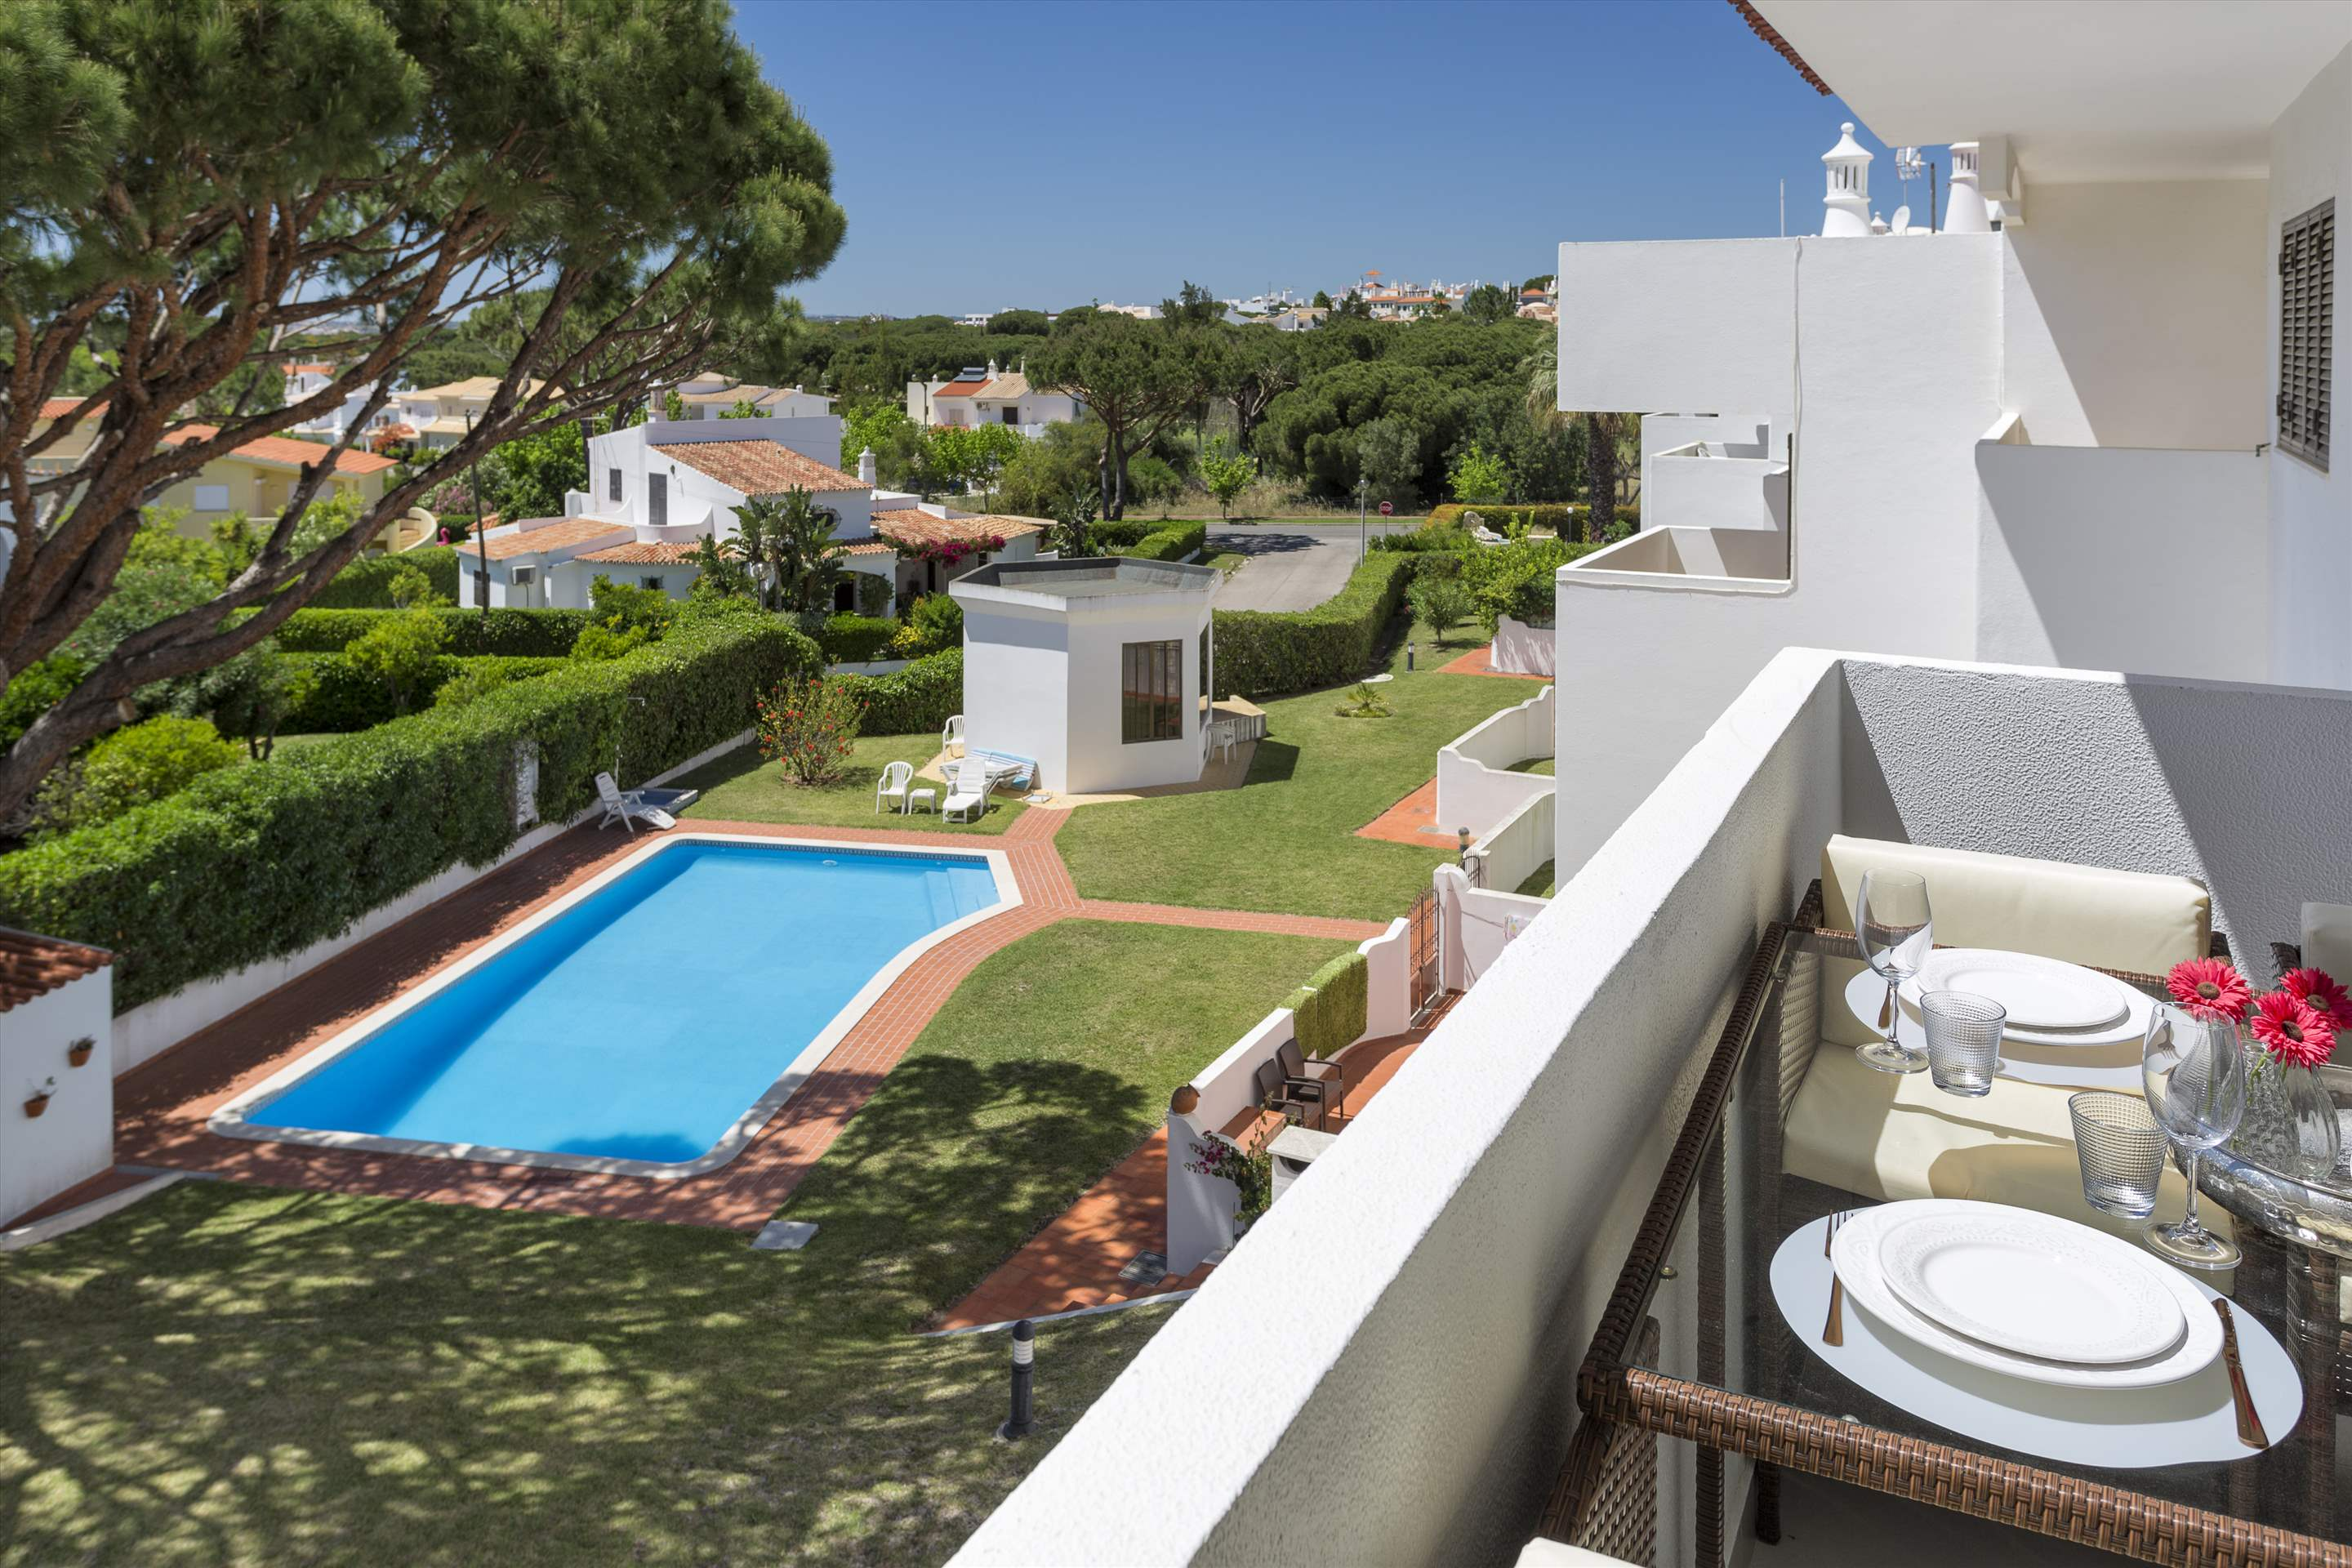 Apartment Jardim do Mar, 2 bedroom apartment in Vilamoura Area, Algarve Photo #2